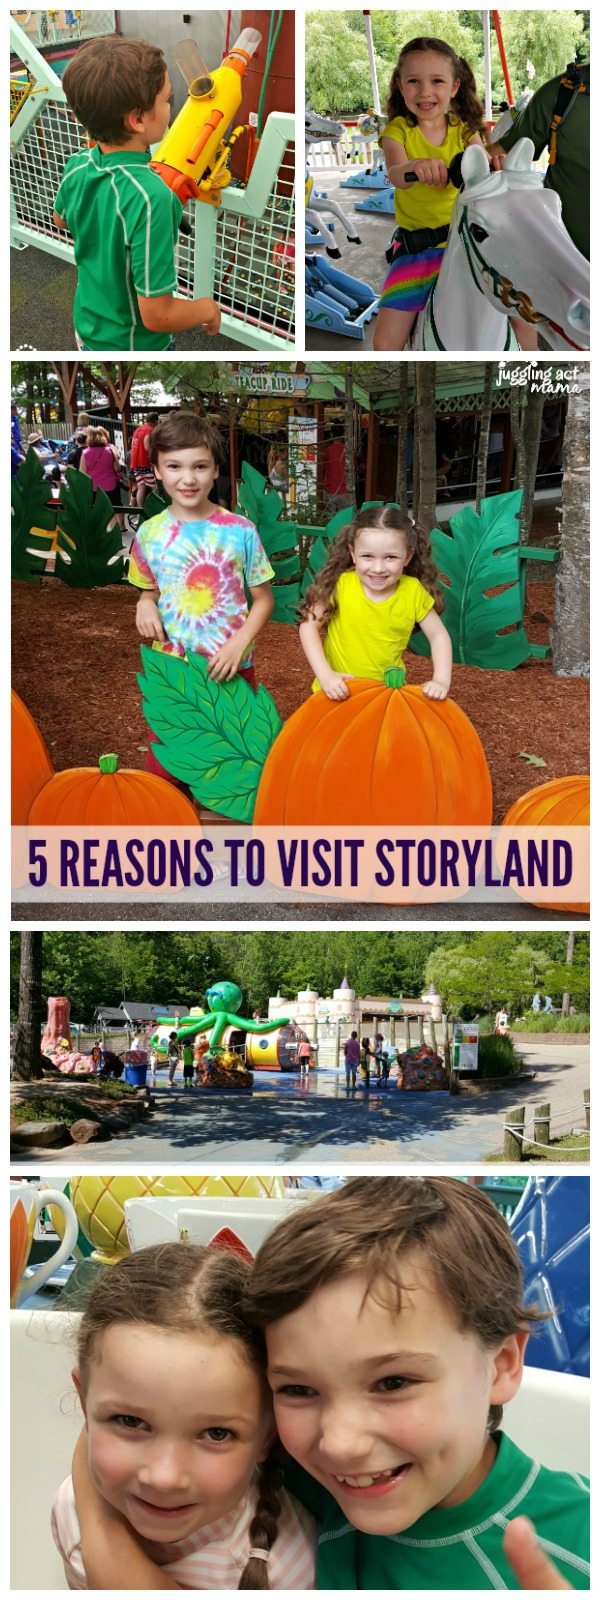 Top 5 Reasons to Visit StoryLand #Sponsored #StoryLandNH #MyStoryLandAdventure #WhiteMountains #NH